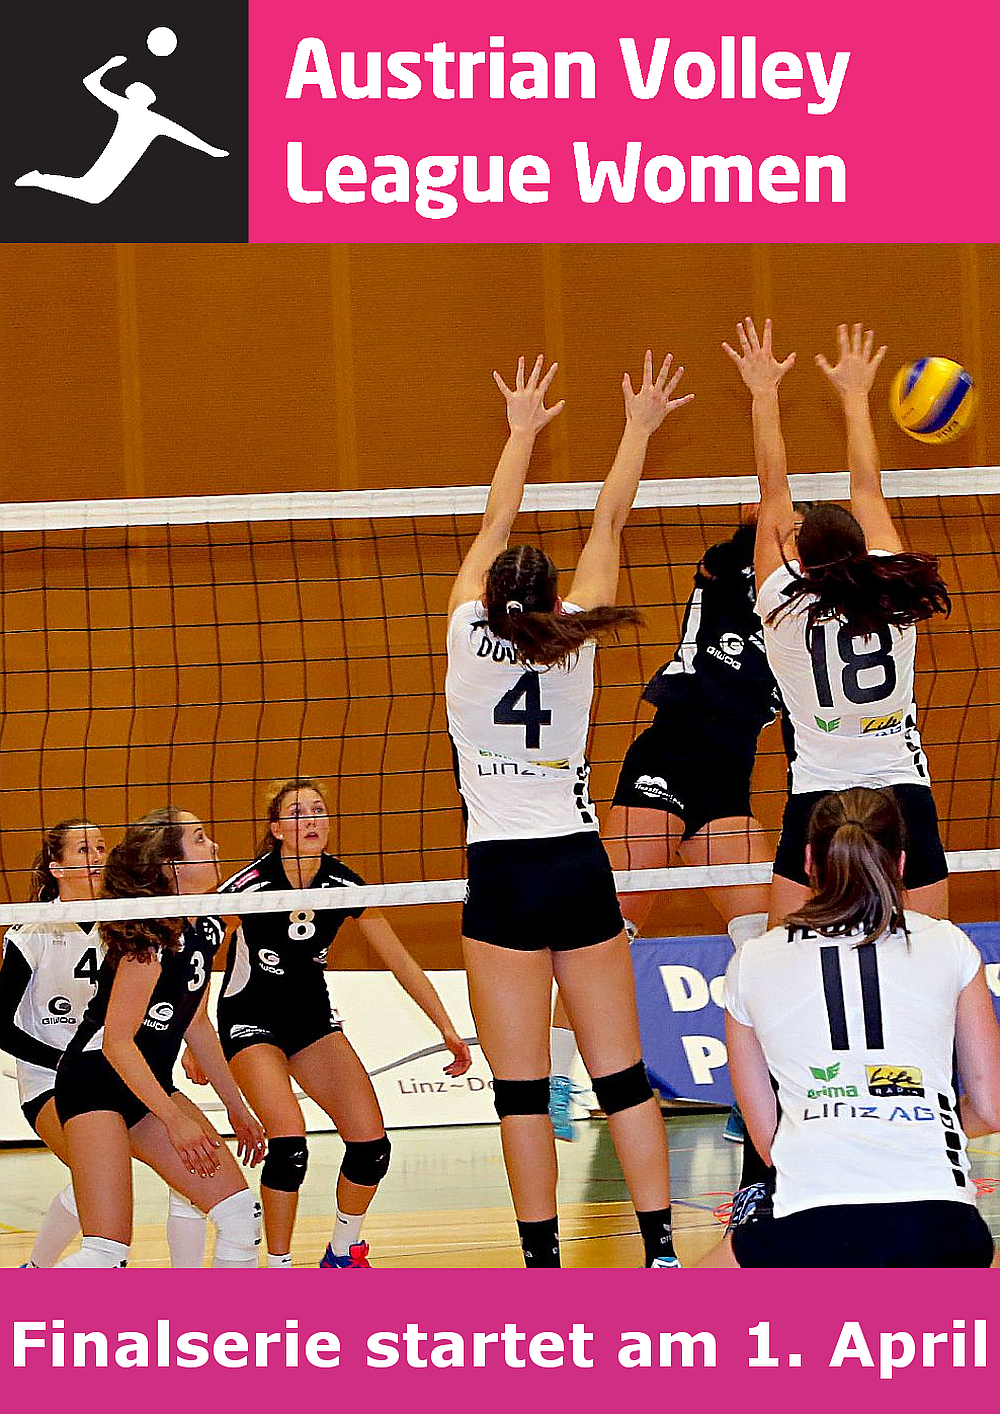 Austrian Volley League Women - FOTO © Photo Plohe